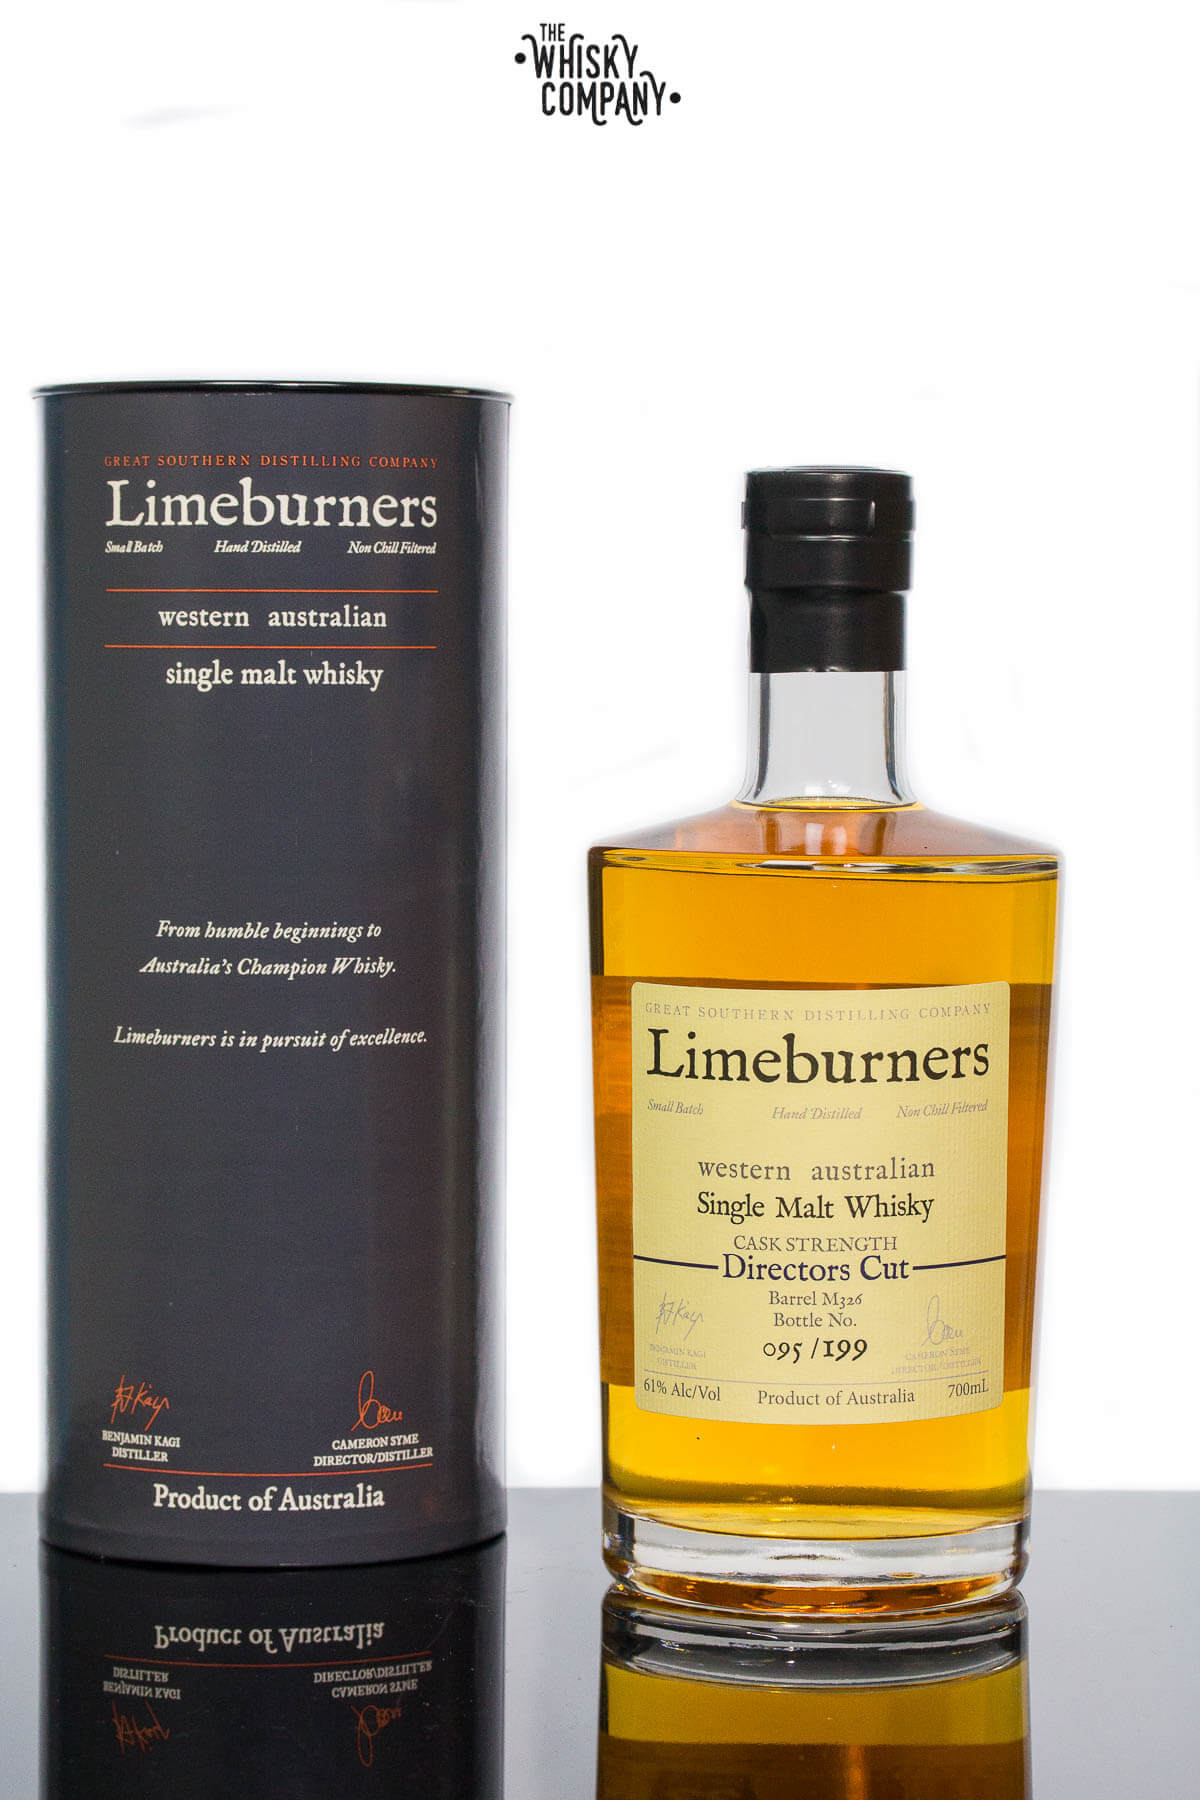 Limeburners Directors Cut M326 Cask Strength Small Batch Australian Single Malt Whisky (700ml)